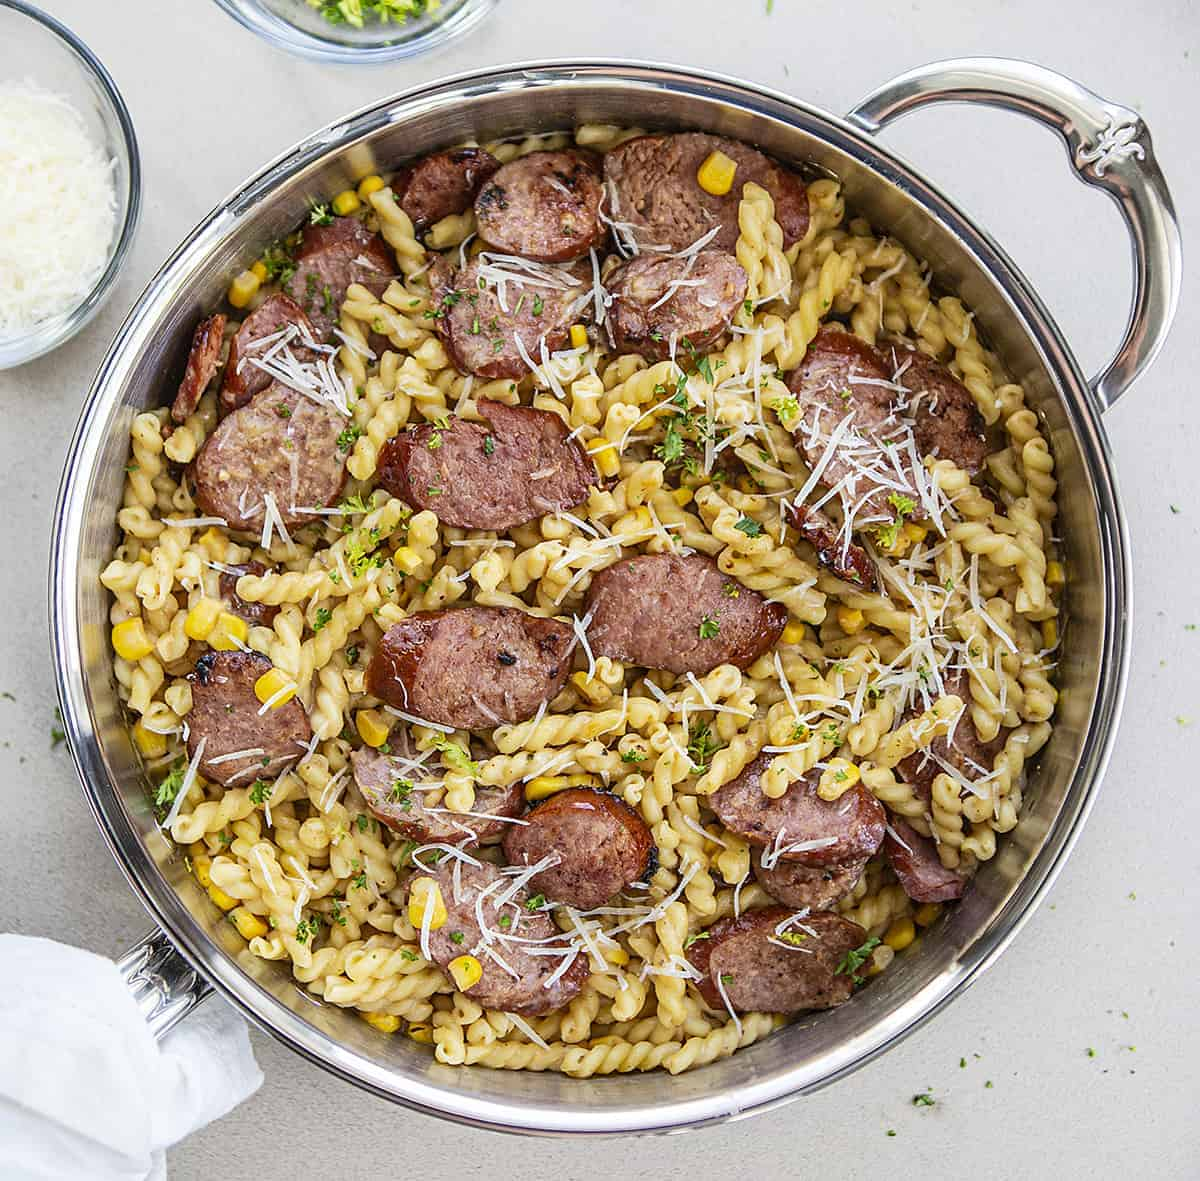 Overhead View of Smoked Sausage Pasta in Hestan Skillet